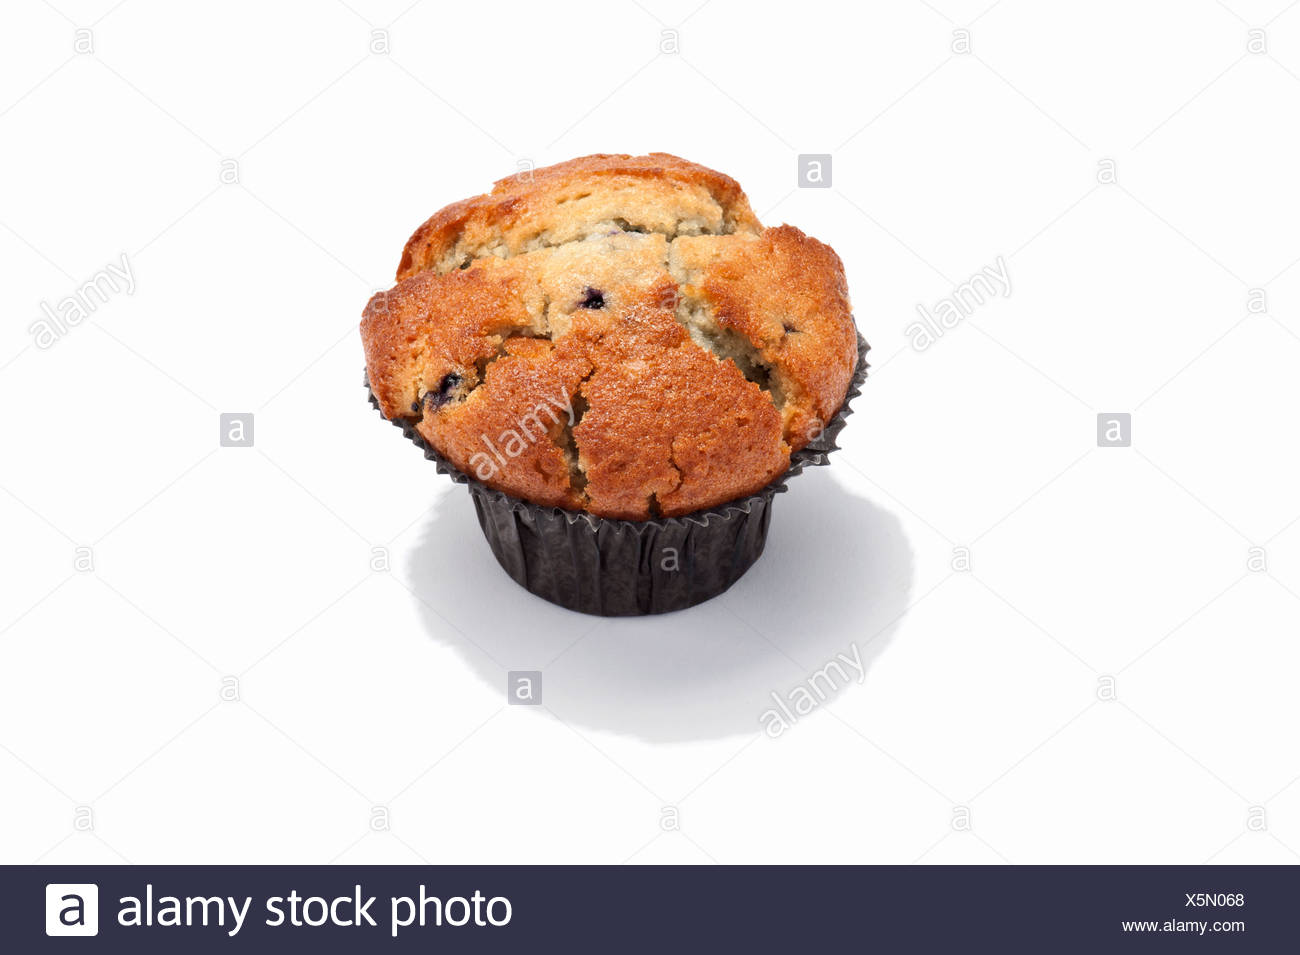 A blueberry muffin - Stock Image